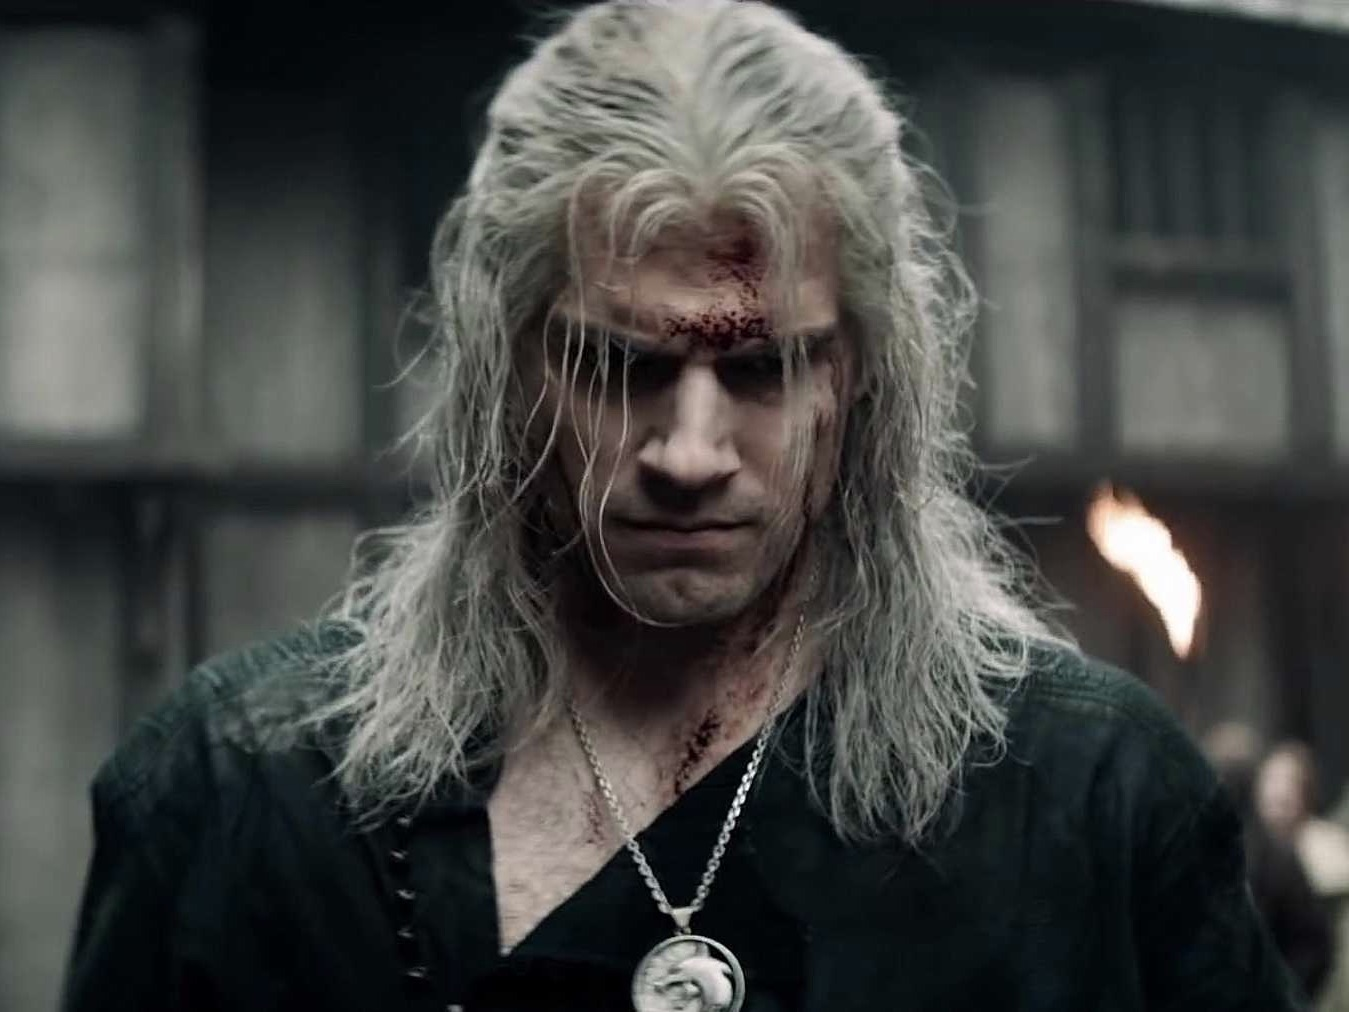 Image of Geralt the Witcher